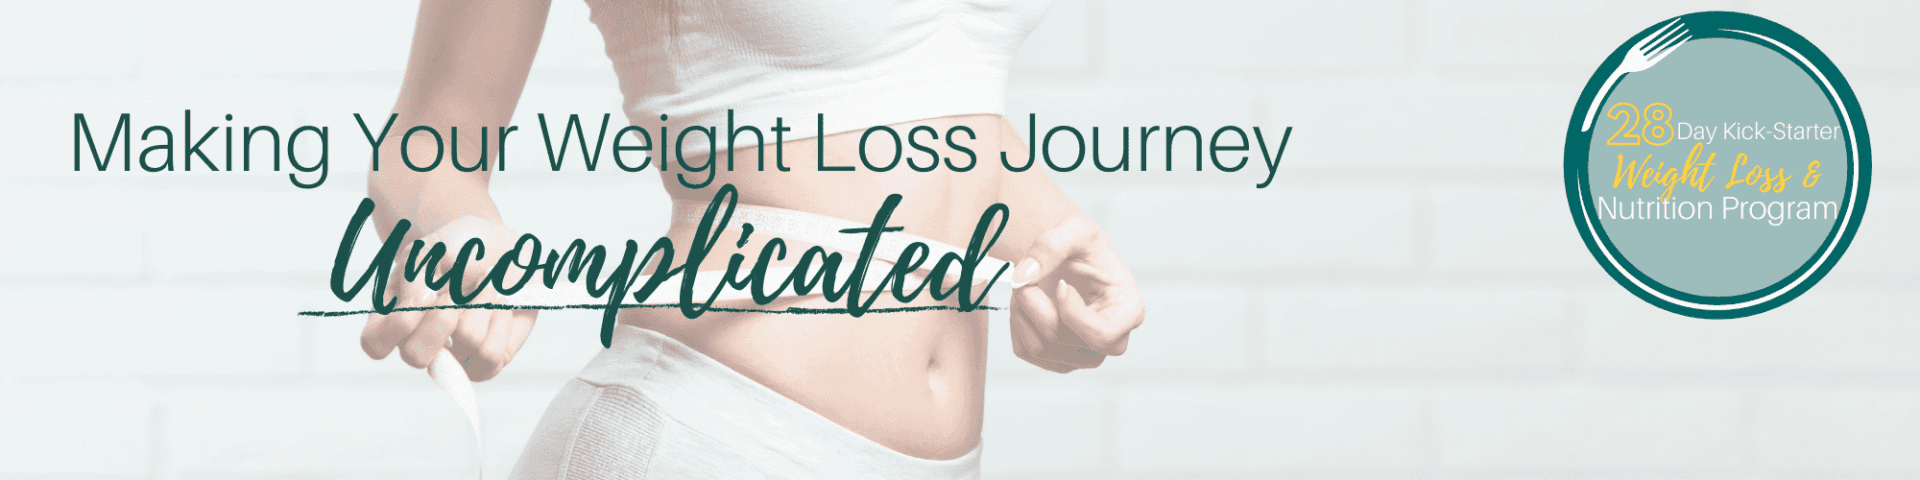 Making Your Weight Loss Journey Uncomplicated